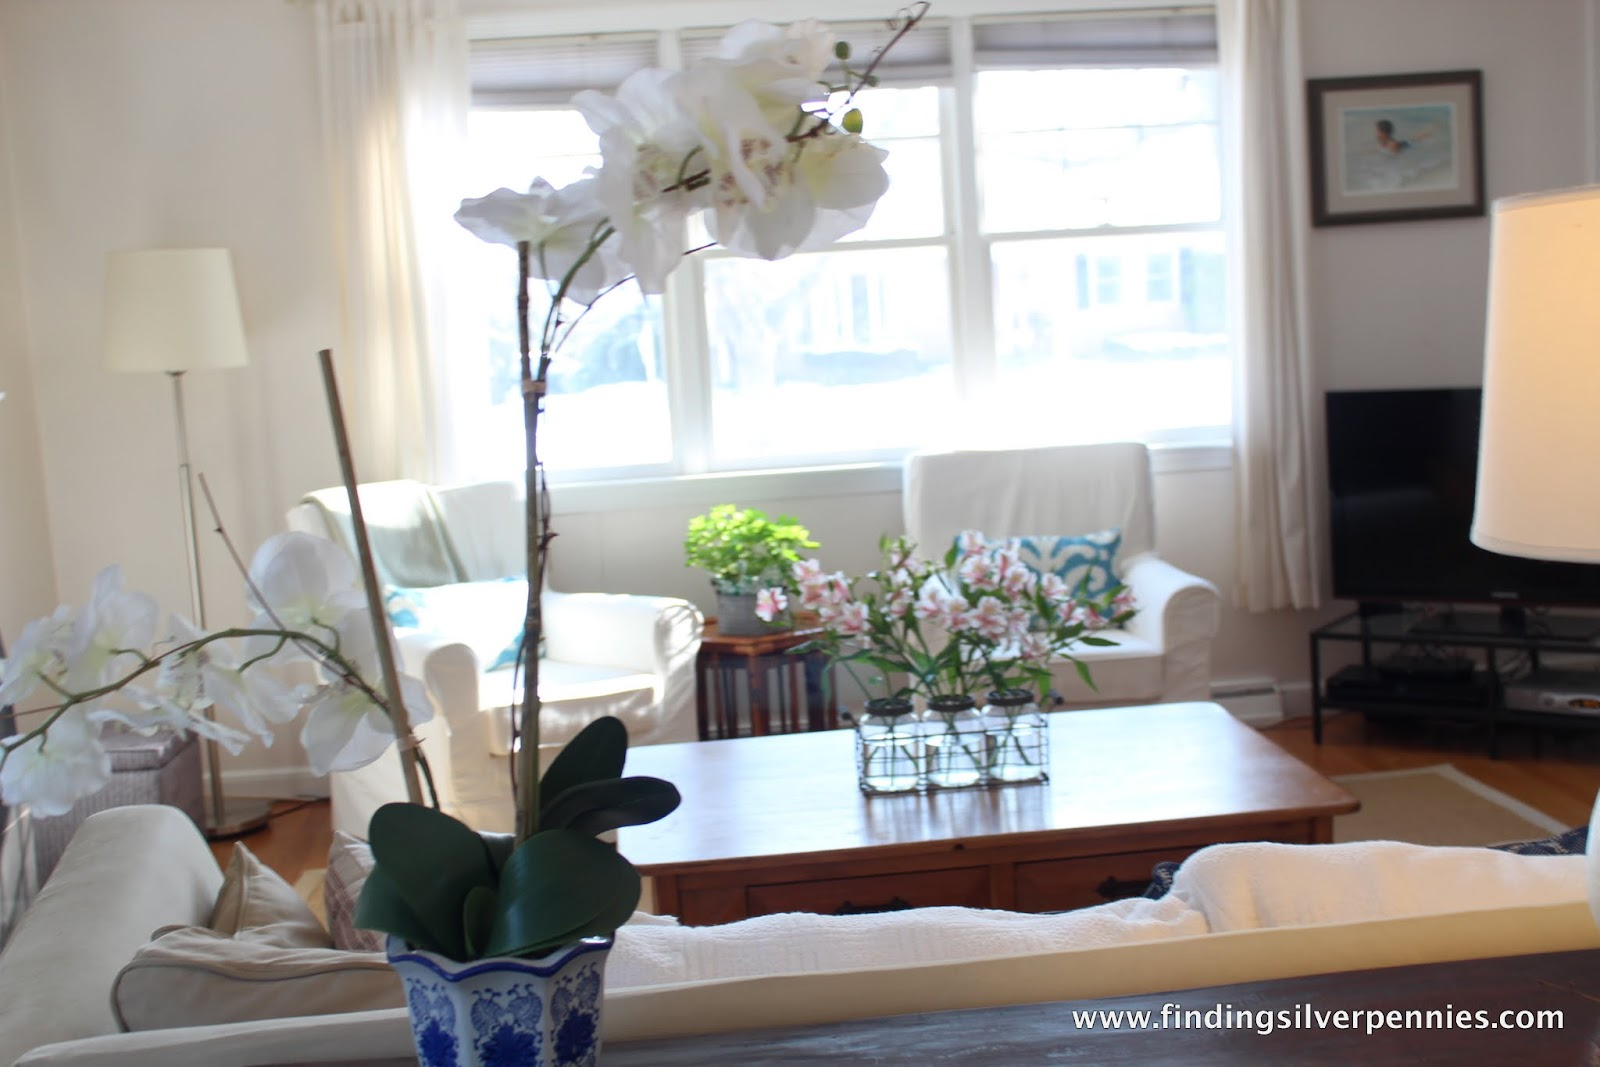 Living Room Updates - Finding Silver Pennies